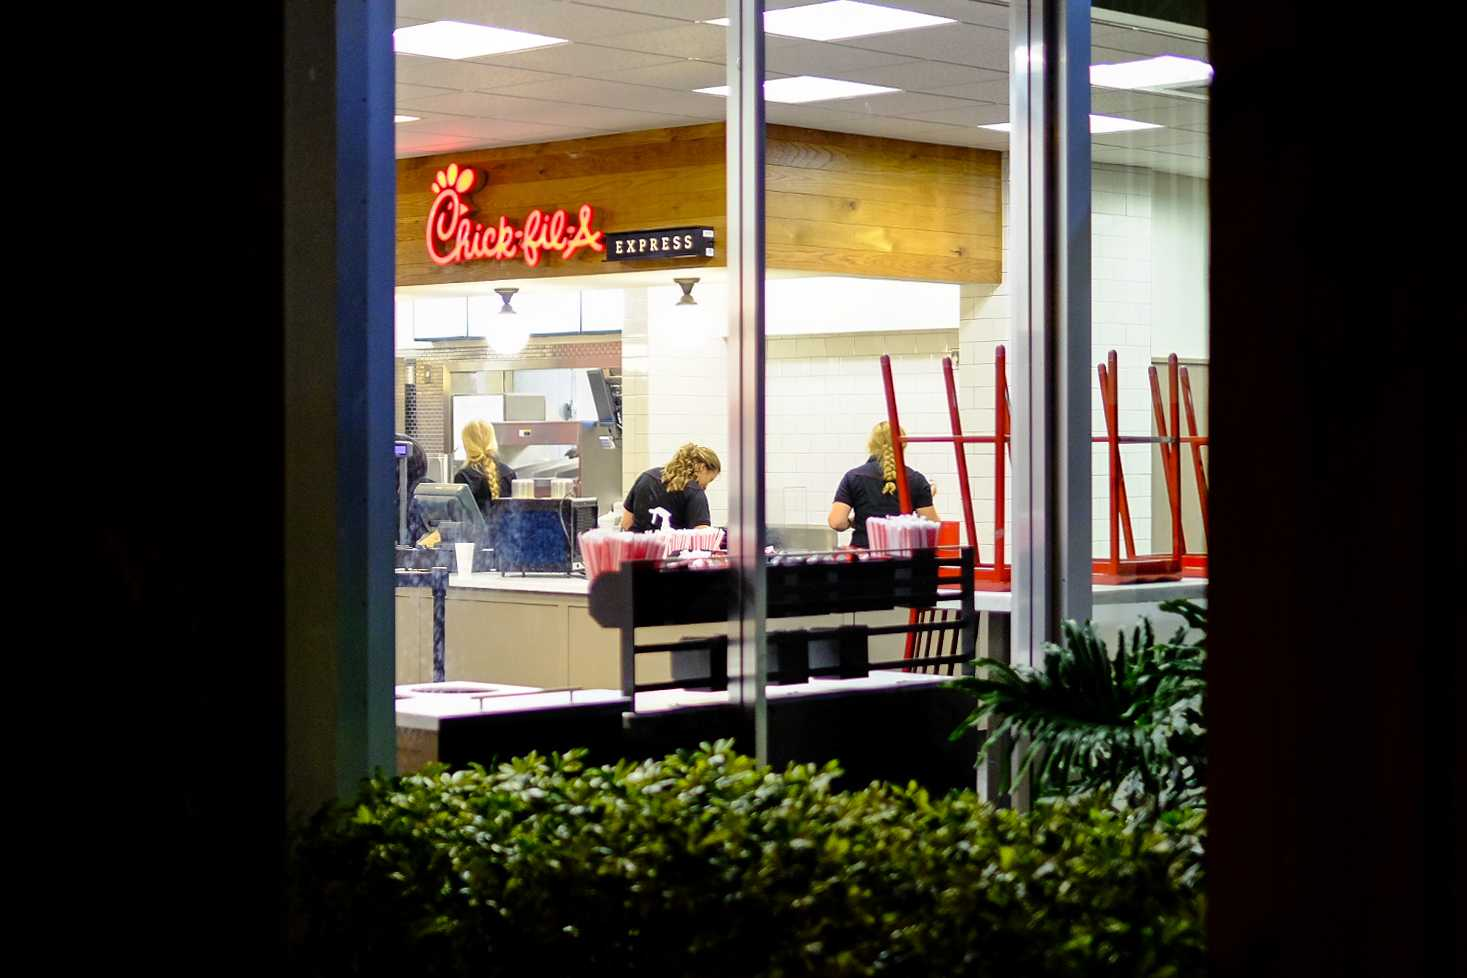 FAU's newest dining establishment on campus, Chick-fil-A, closing after its grand opening that morning.